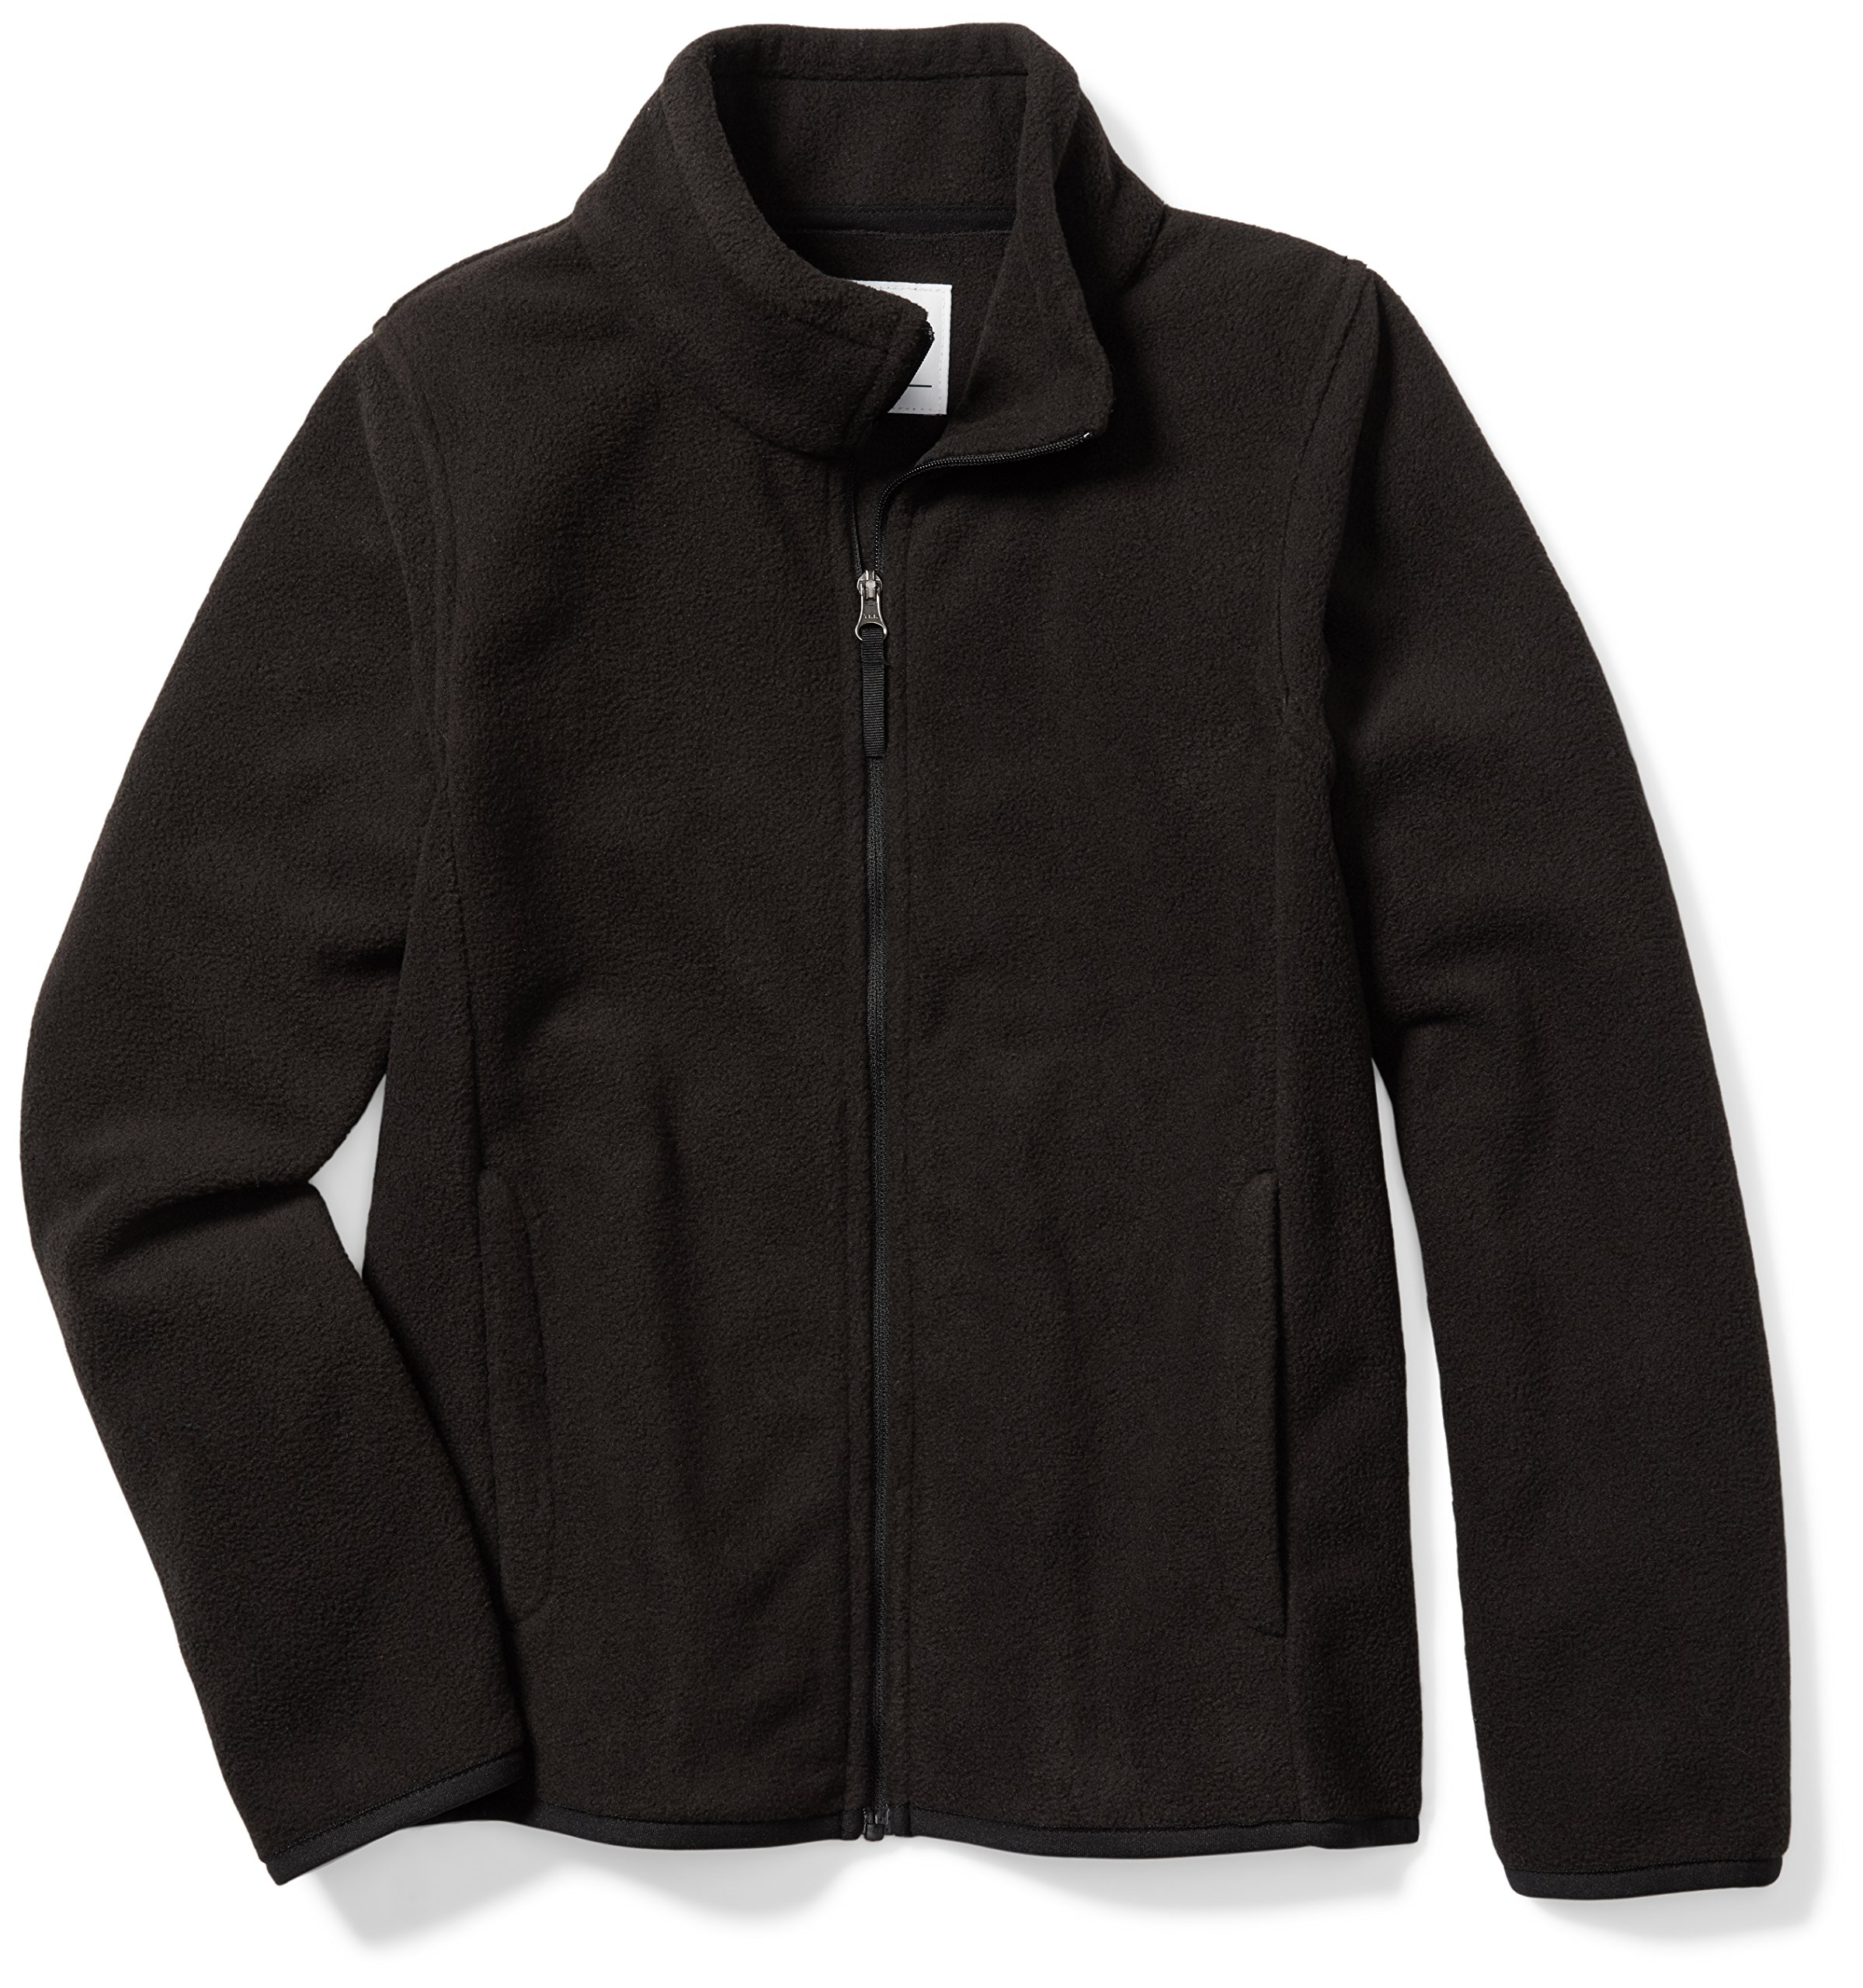 Amazon Essentials Girls' Full-Zip Polar Fleece Jacket, Black, Small